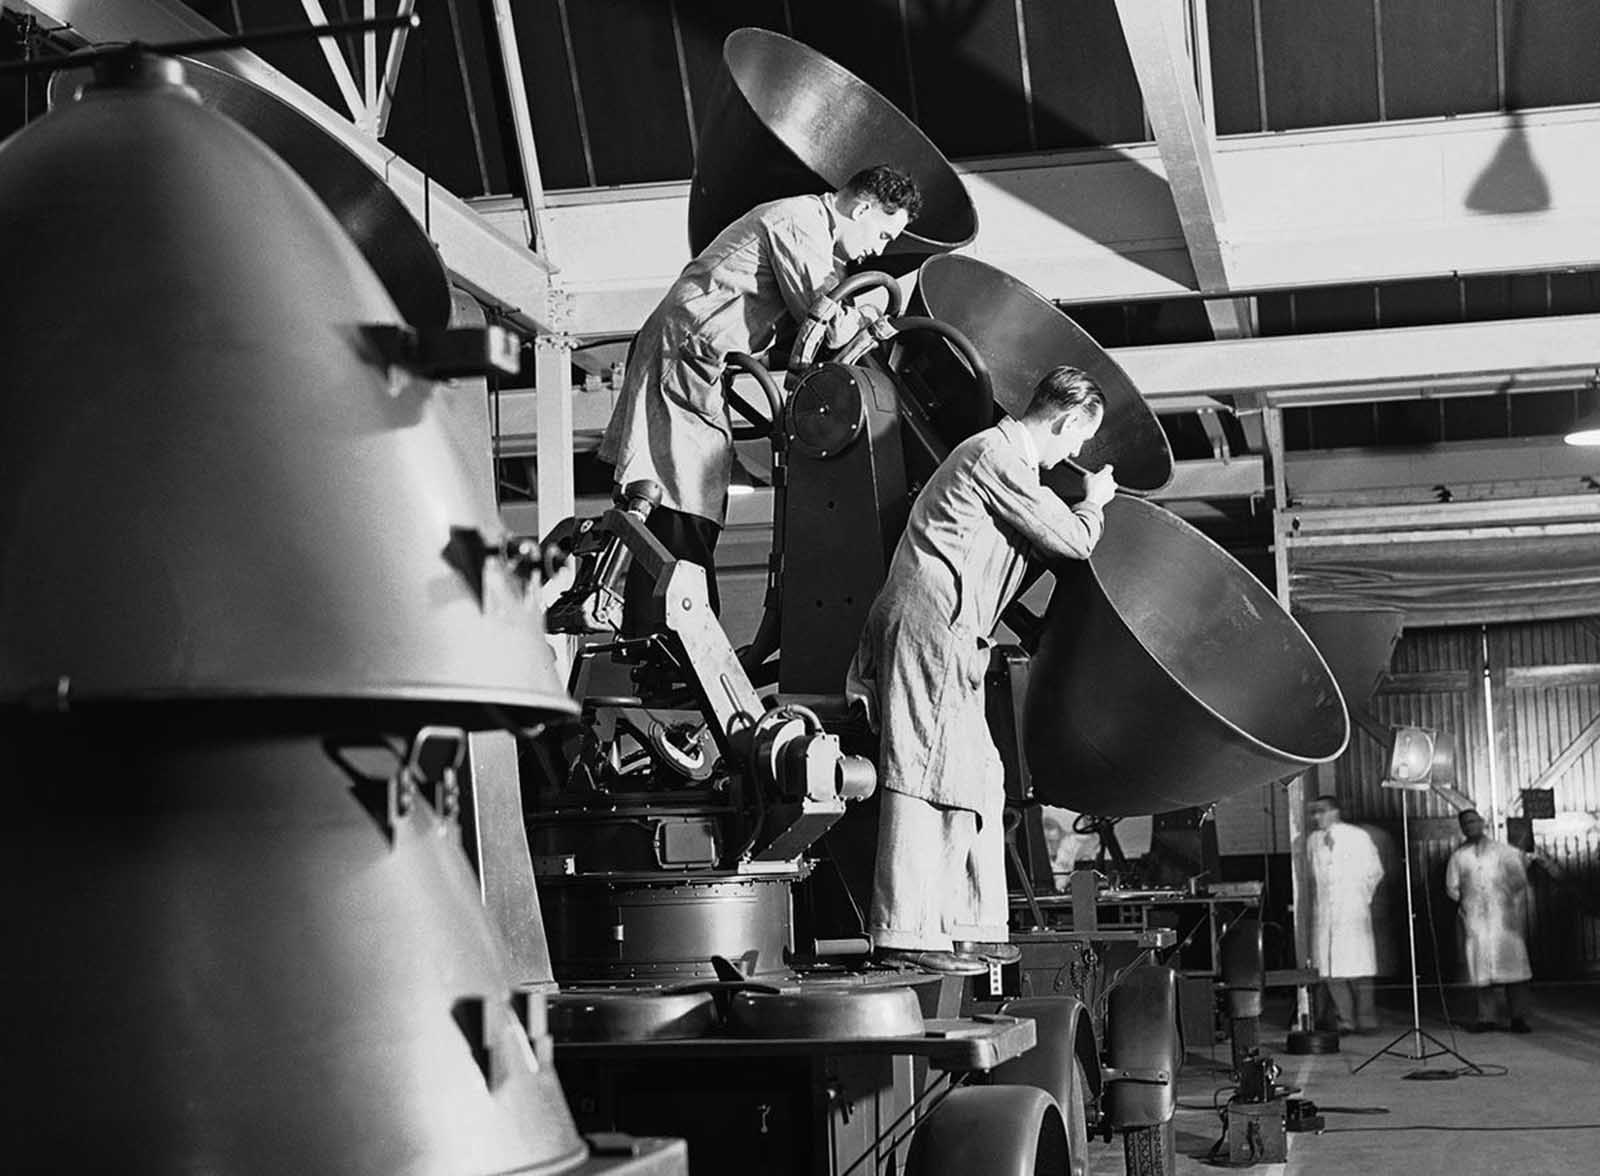 Workmen fit a set of paraboloids in a sound detector for use by anti-aircraft batteries guarding England, in a factory somewhere in England, on July 30, 1940.